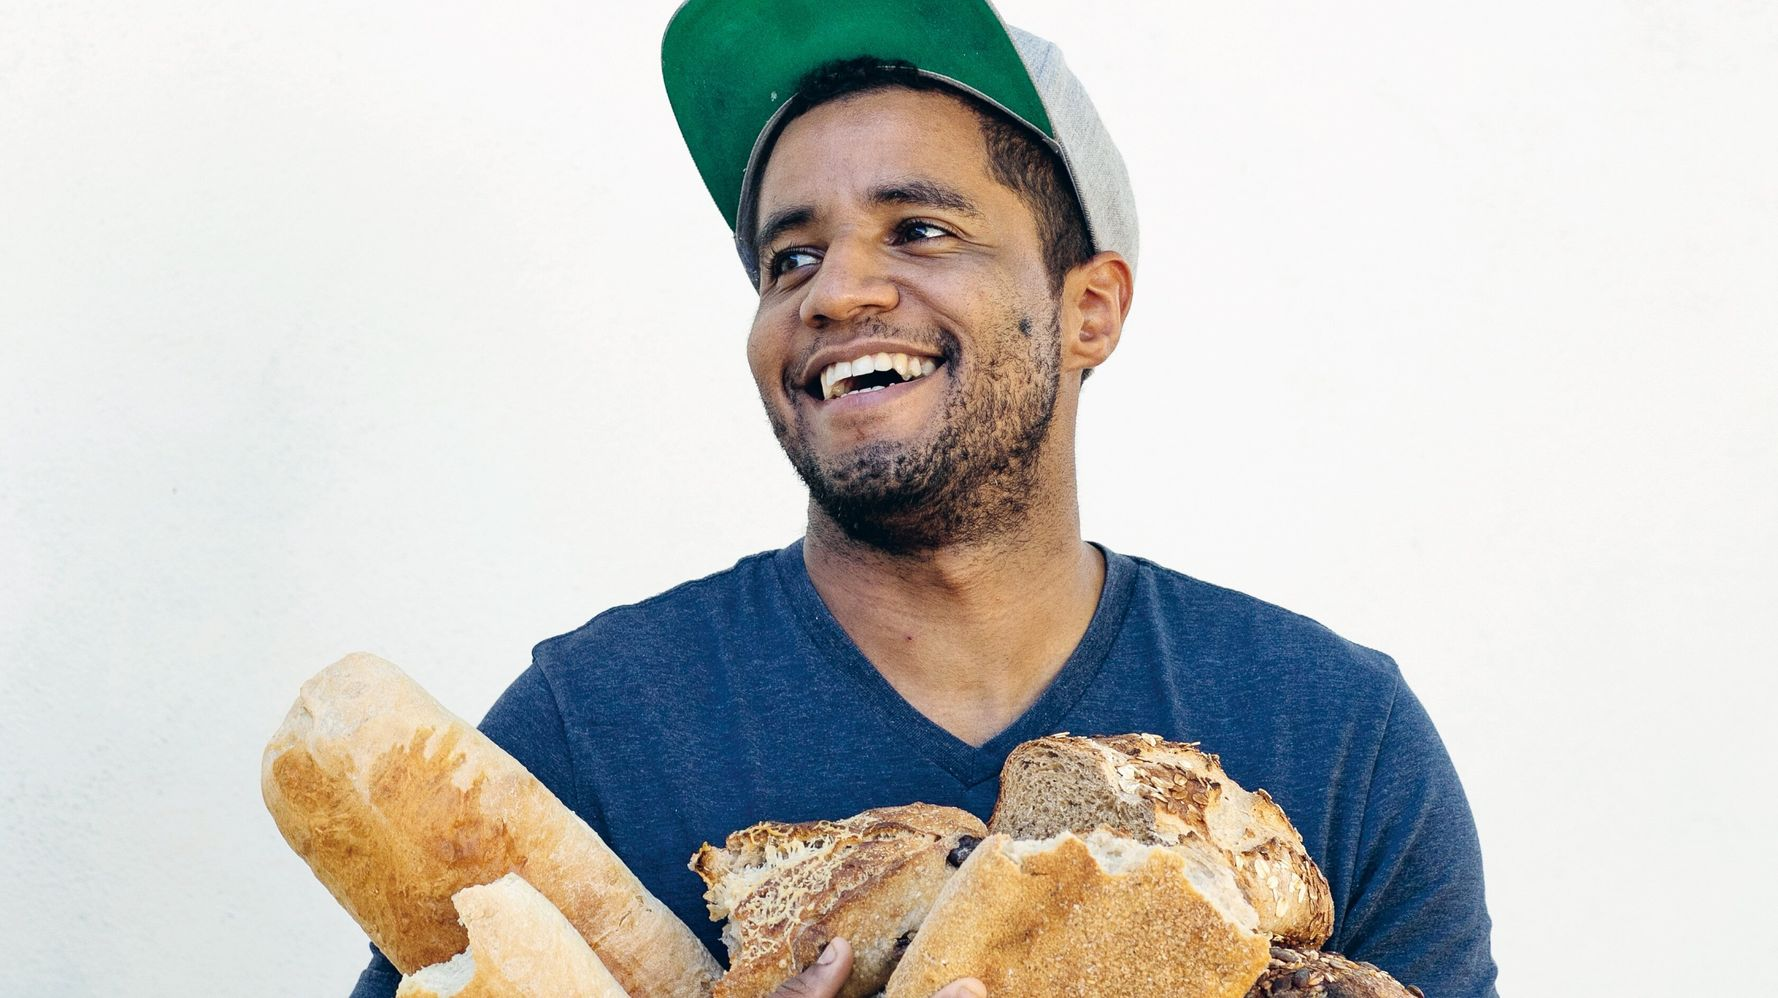 Bryan Ford Is Ripping Open The Idea Of What Sourdough Baking Can Be